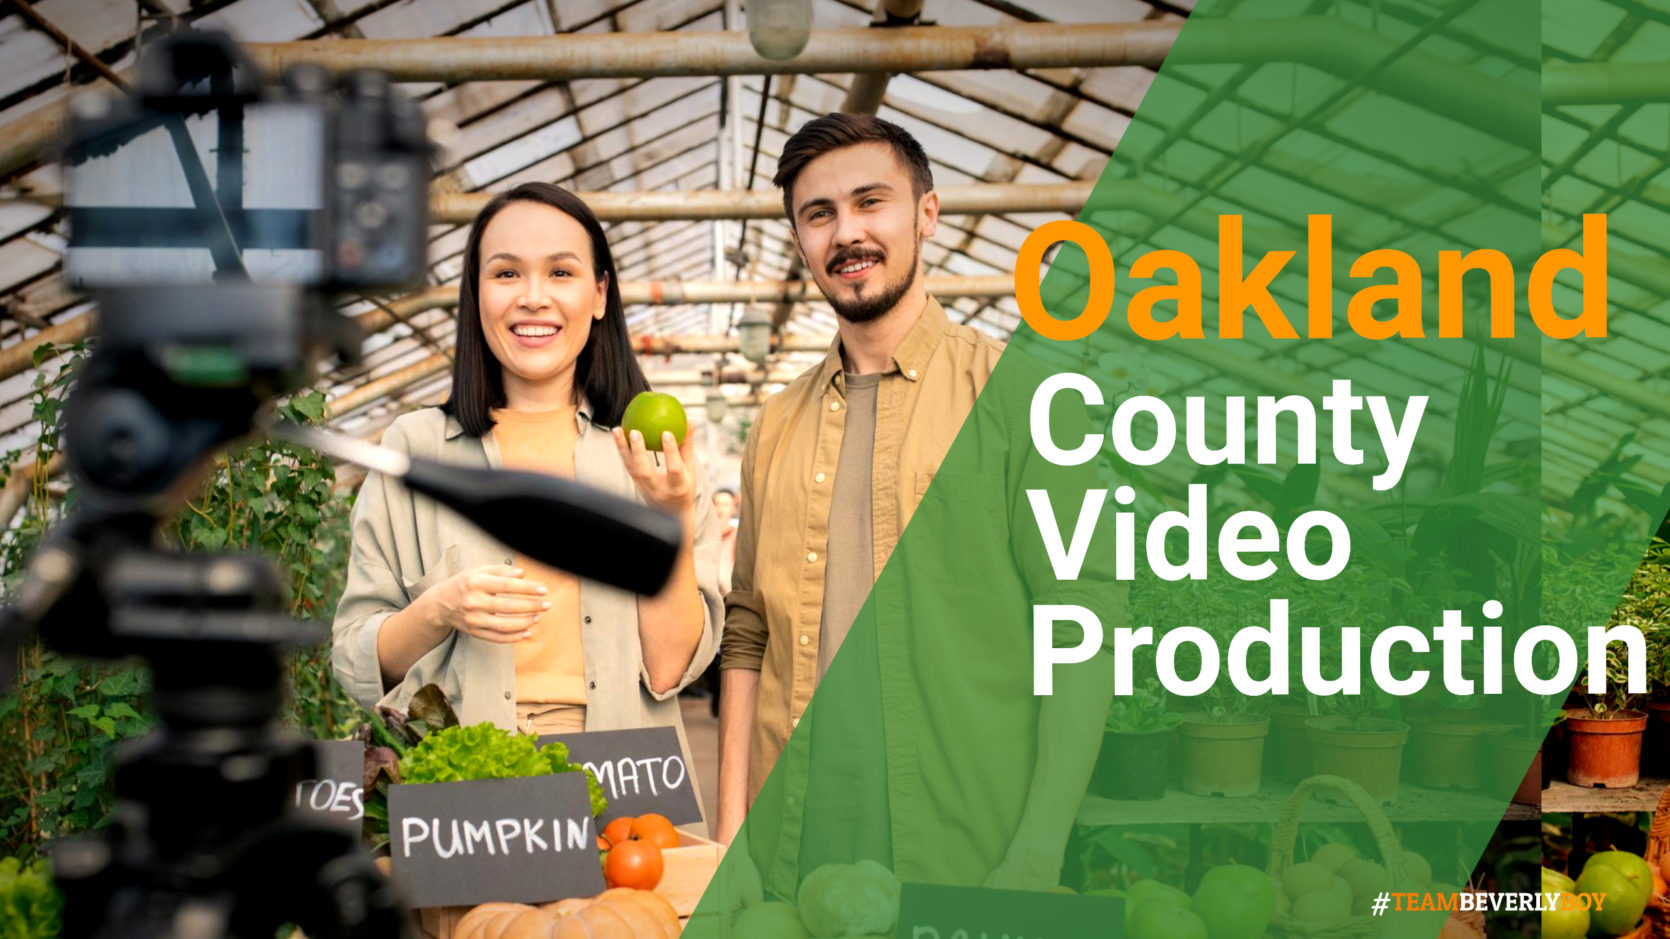 Oakland County Video Production